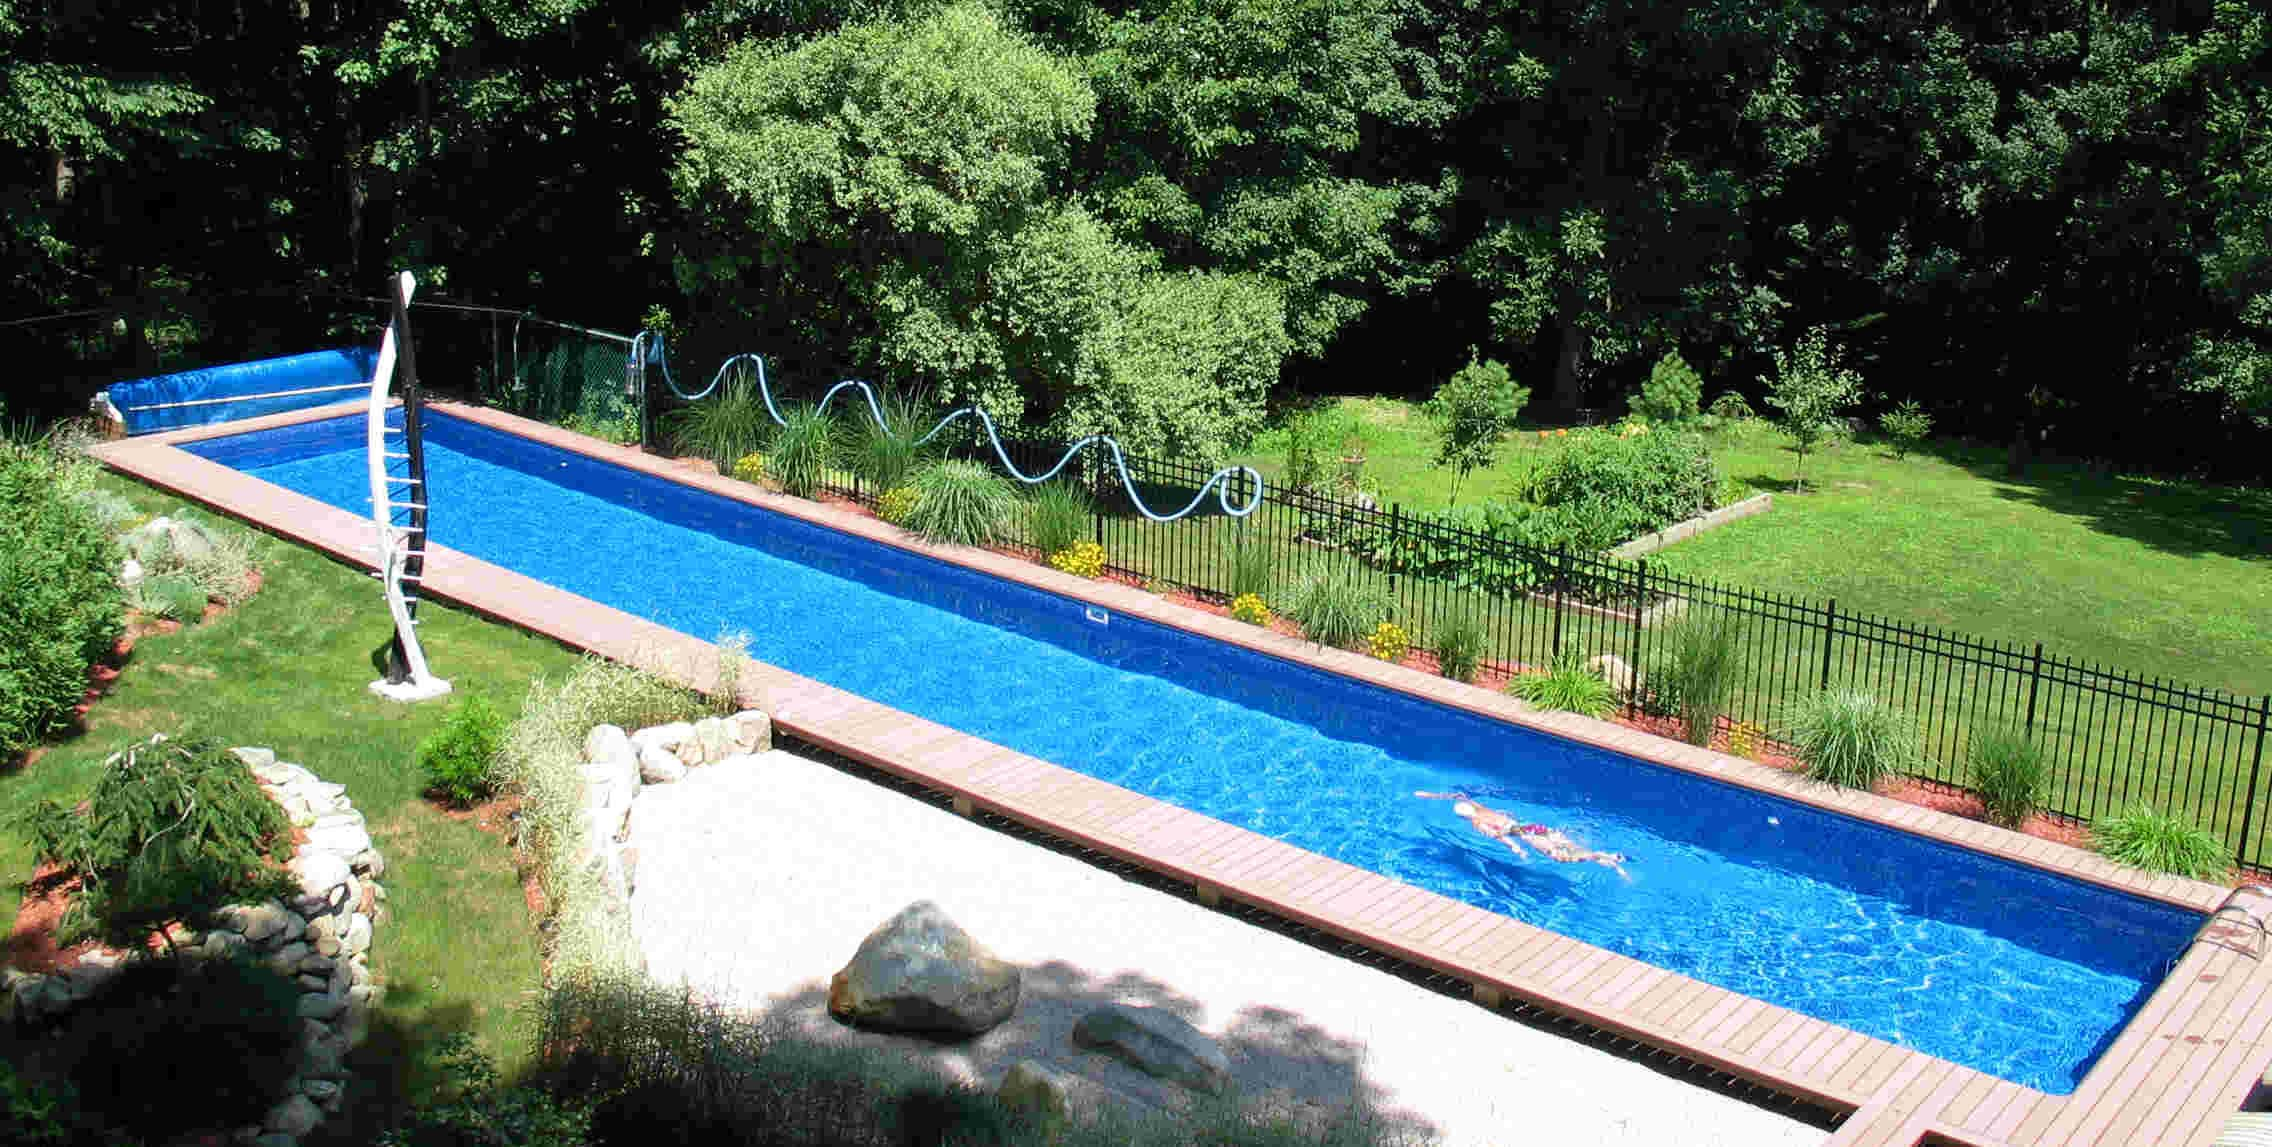 Diy inground swimming pool backyard design ideas for Pool design basics